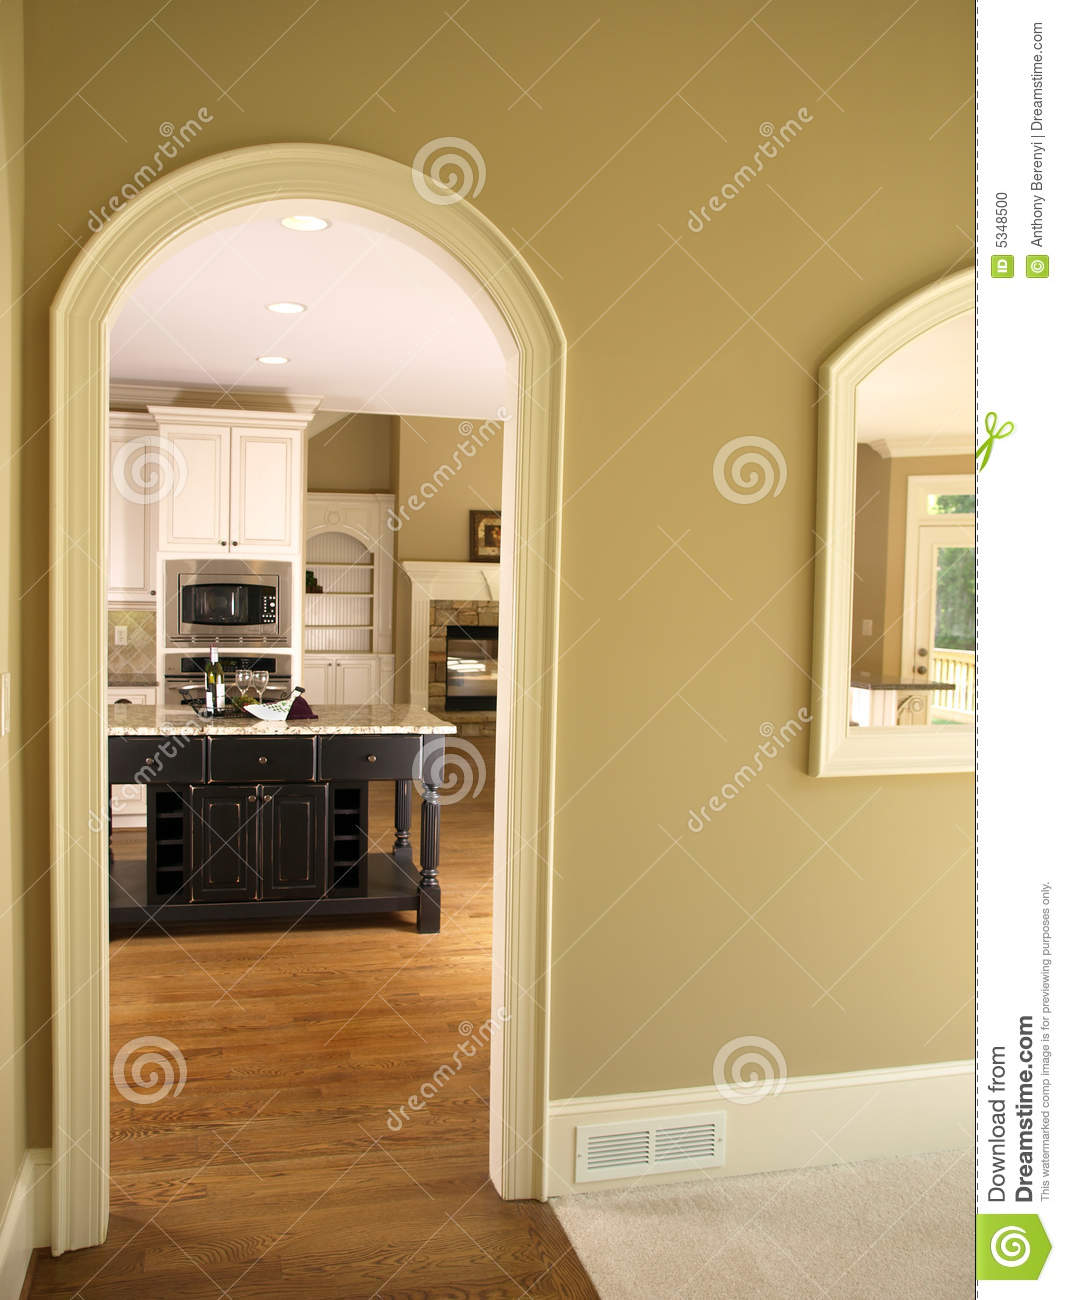 Luxury model home kitchen arch door